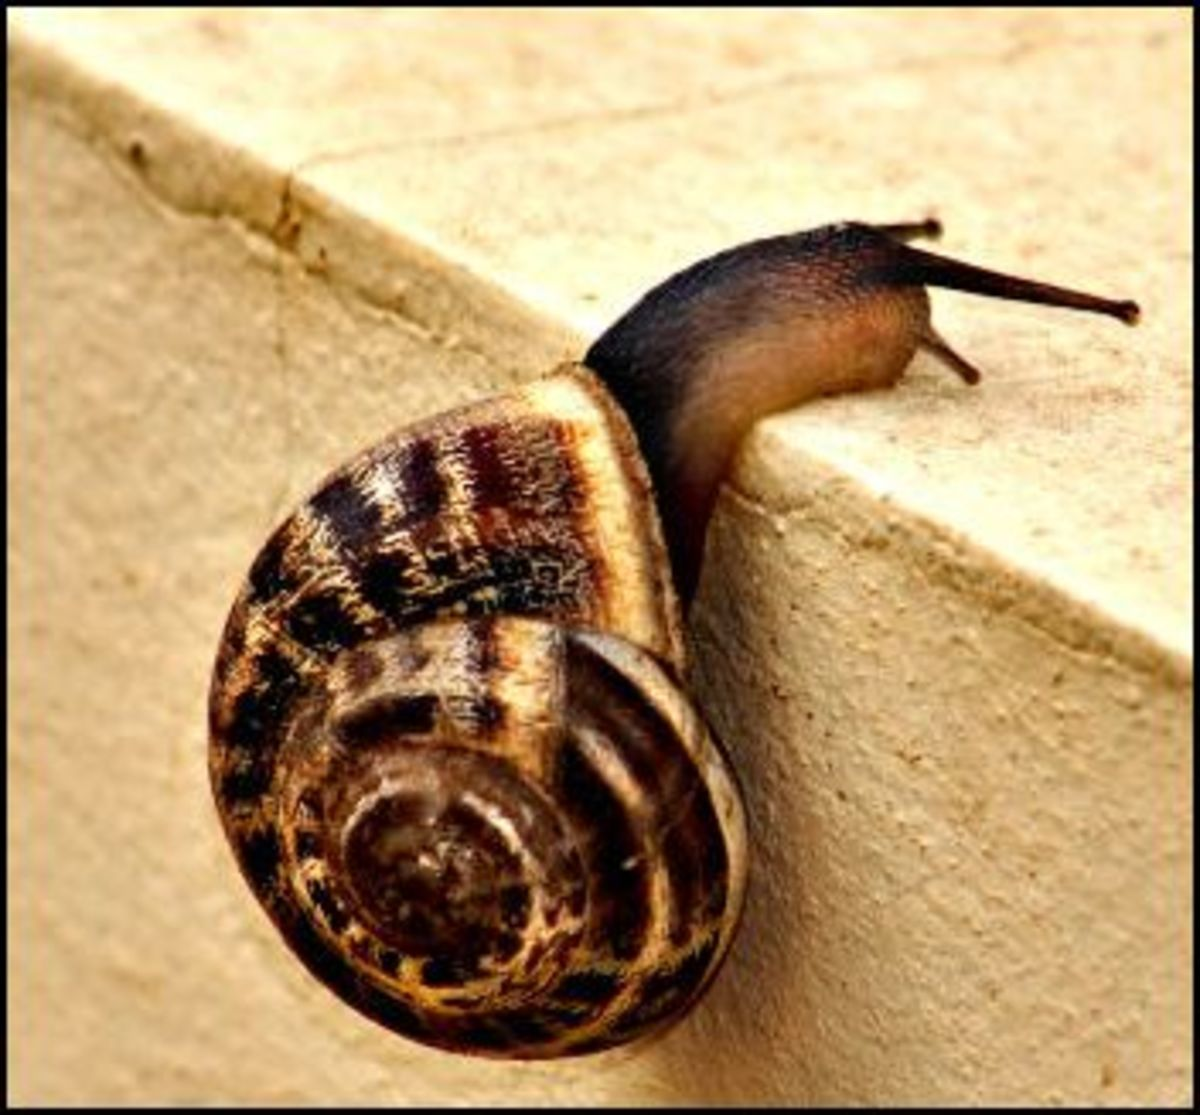 How to Keep Slugs and Snails Away From Your Garden